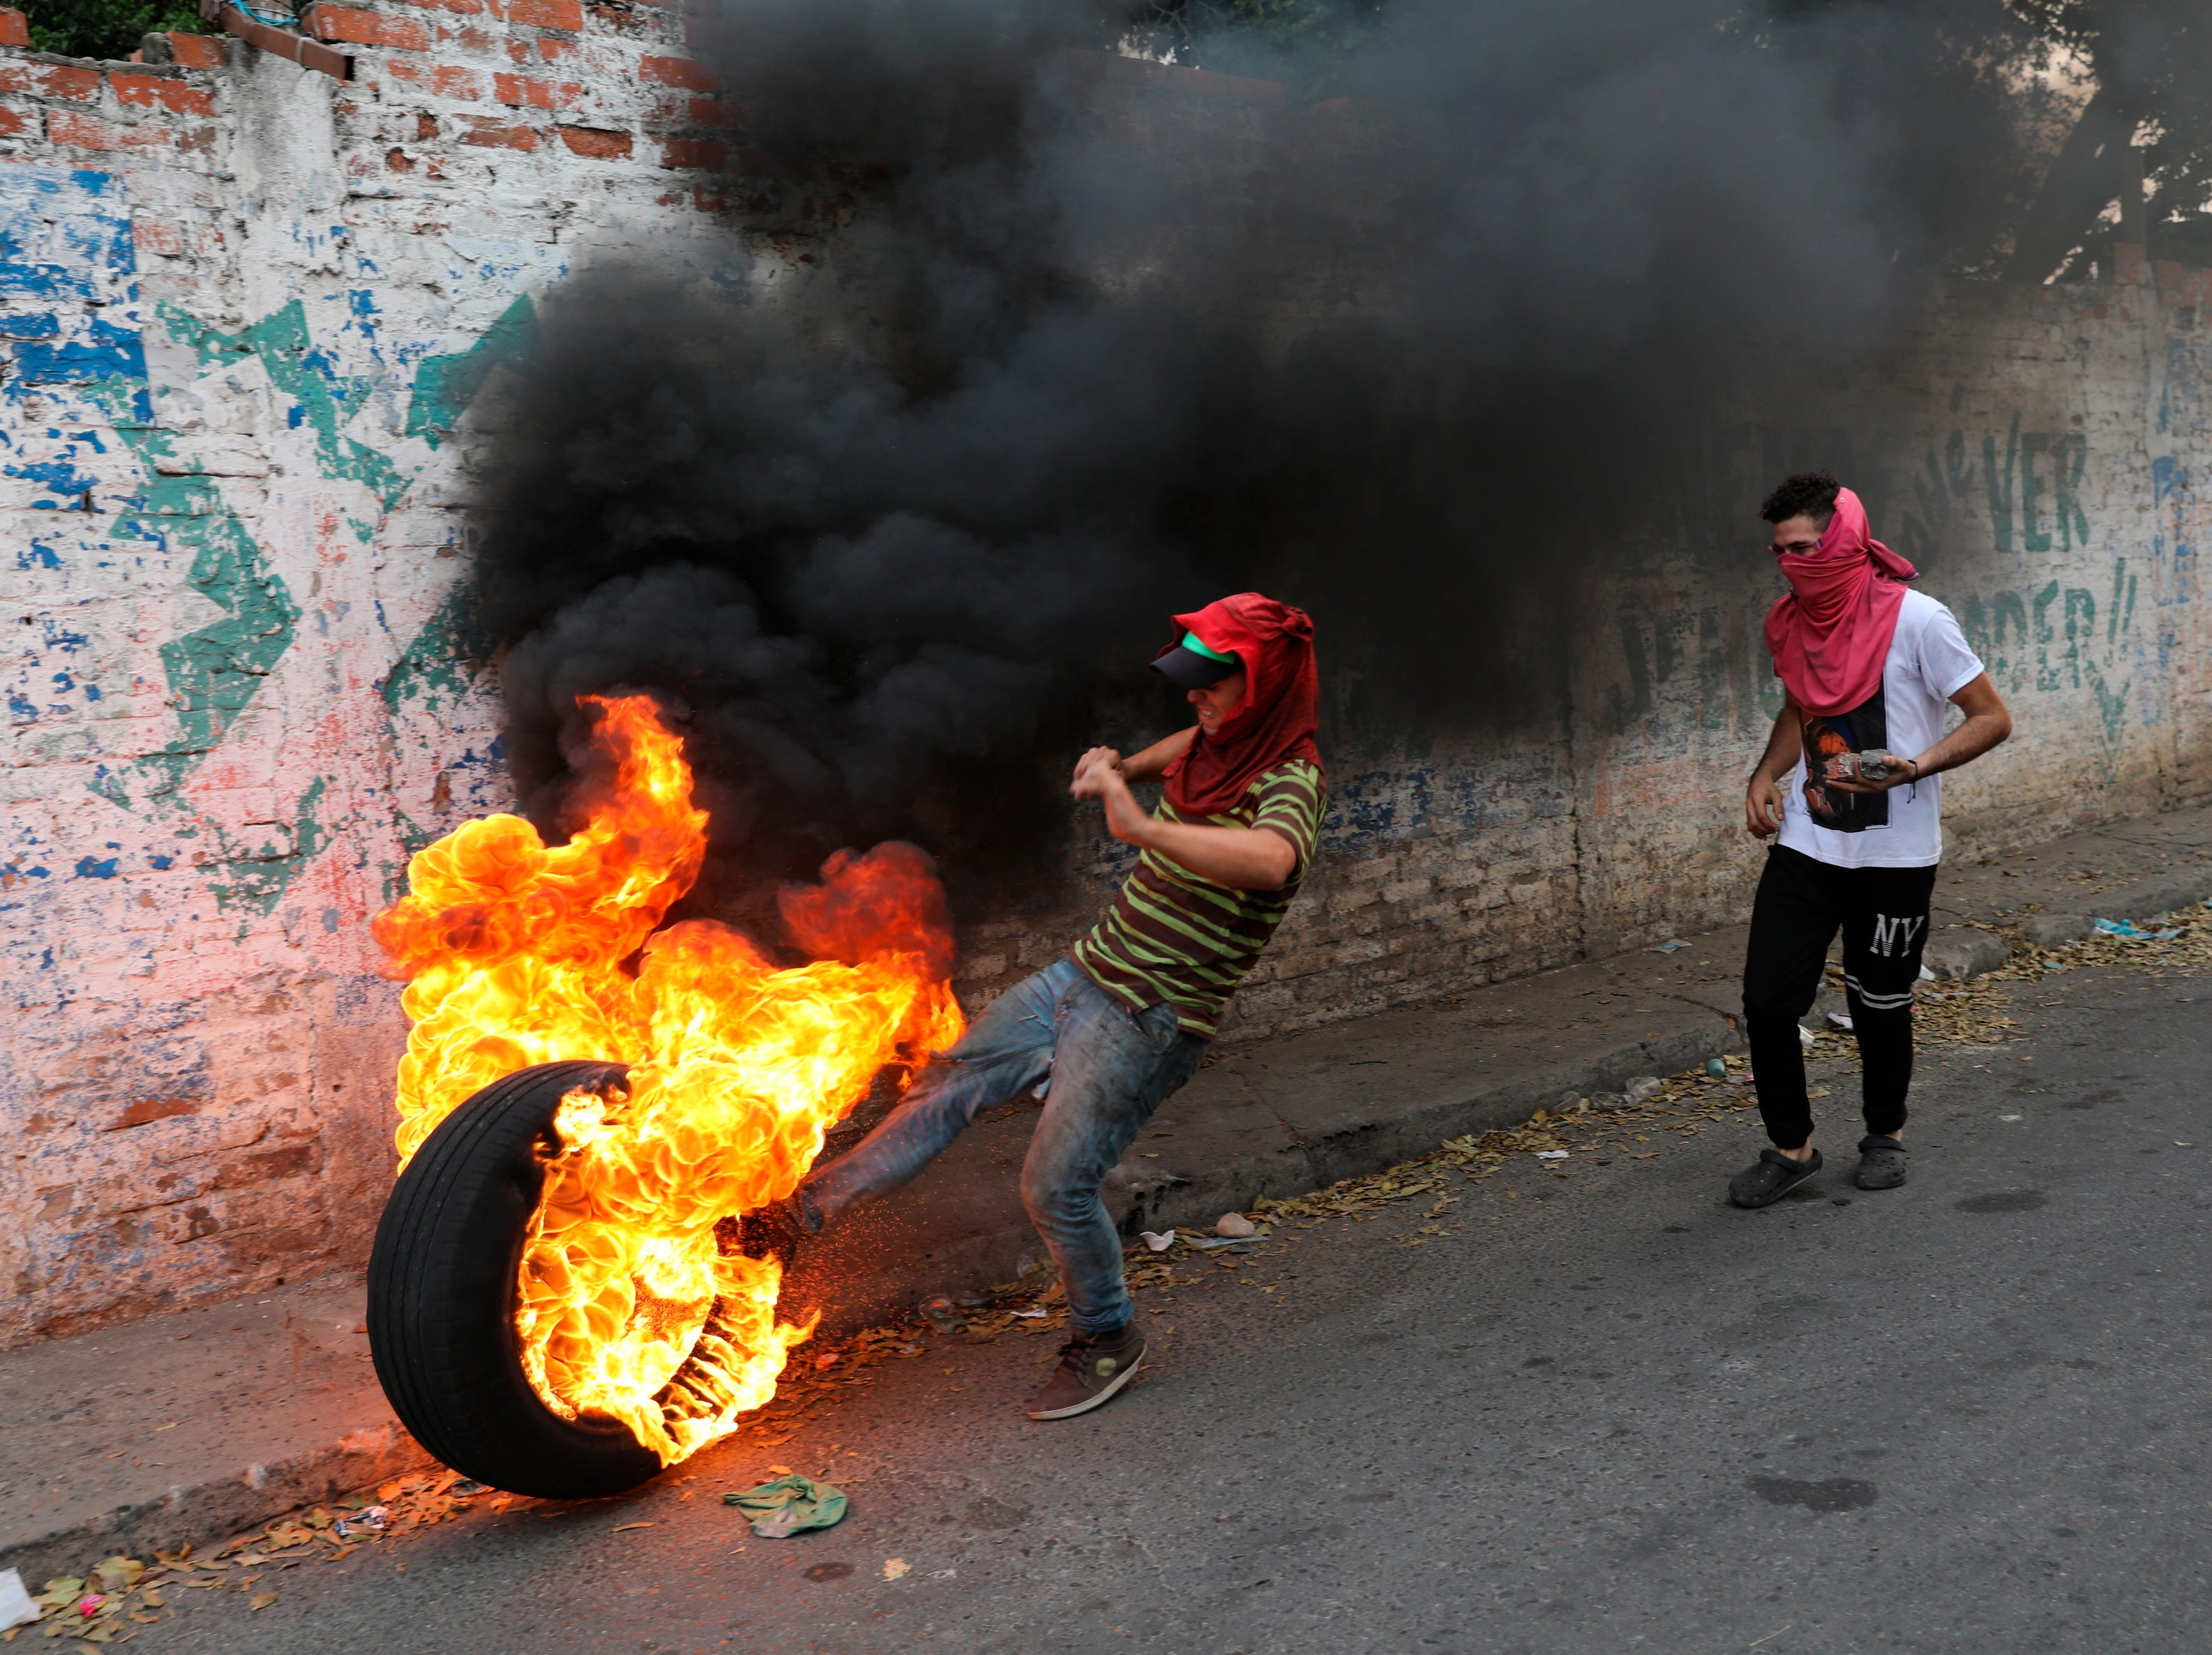 A demonstrator kicks a burning tire during clashes with the police in Urena, Venezuela, near the border with Colombia, Saturday, Feb. 23, 2019. Venezuela's National Guard fired tear gas on residents clearing a barricaded border bridge between Venezuela and Colombia on Saturday, heightening tensions over blocked humanitarian aid that opposition leader Juan Guaido has vowed to bring into the country over objections from President Nicolas Maduro.